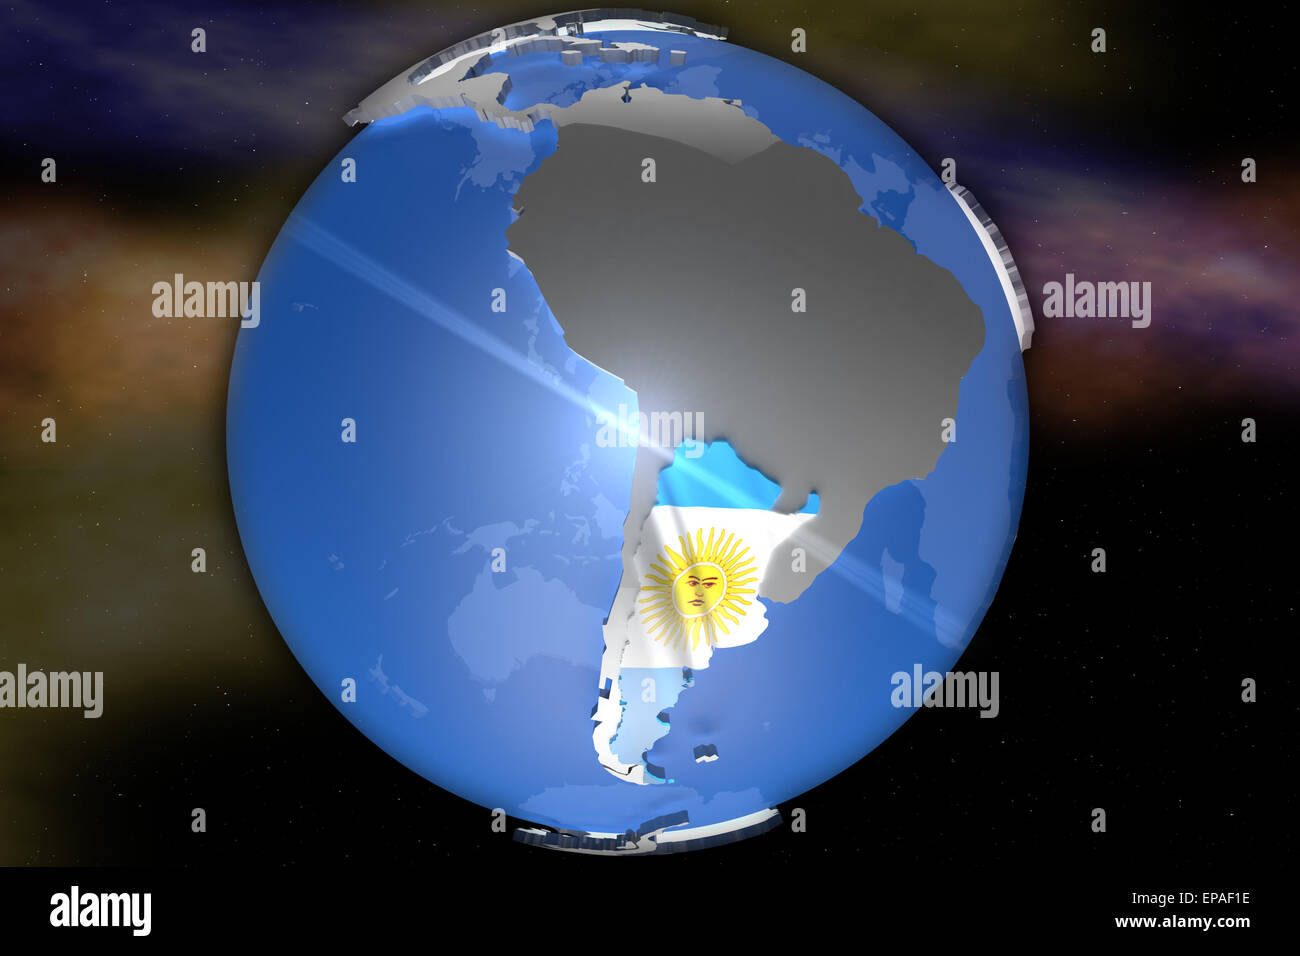 Country Of Argentina On D Map Designed With The Country Flag - Argentina 3d map